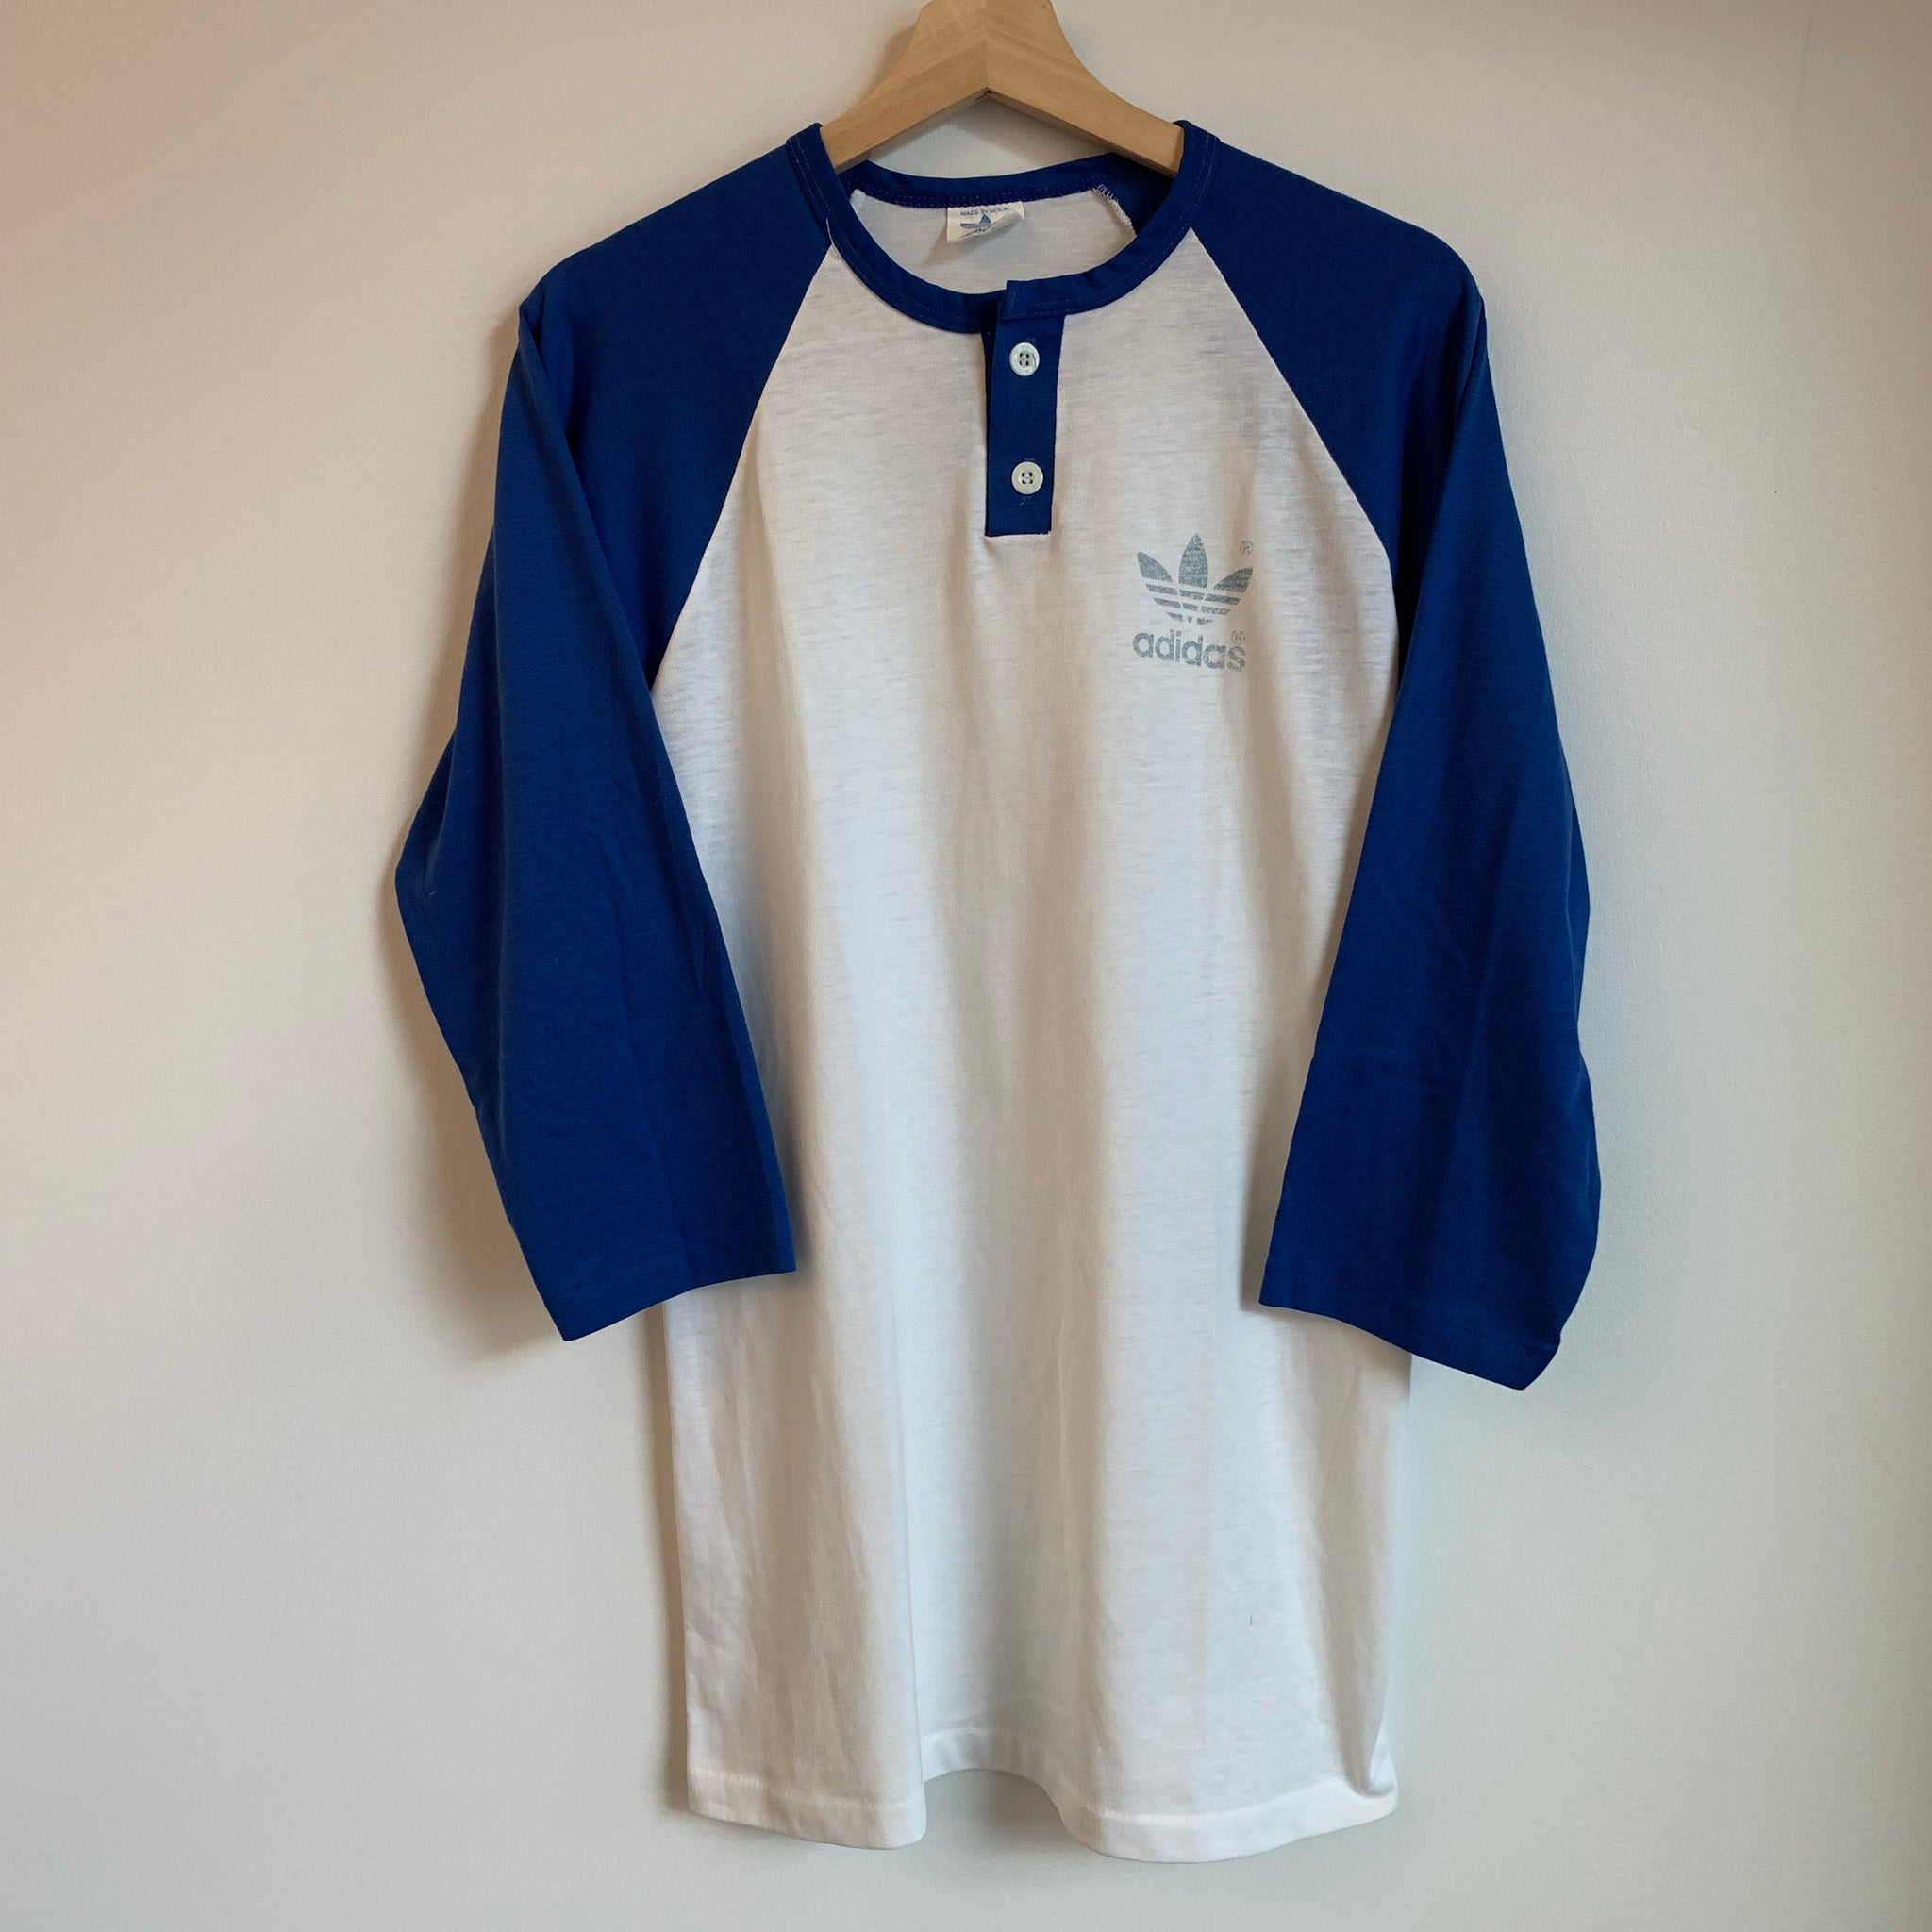 Adidas White/Blue Baseball Tee Shirt